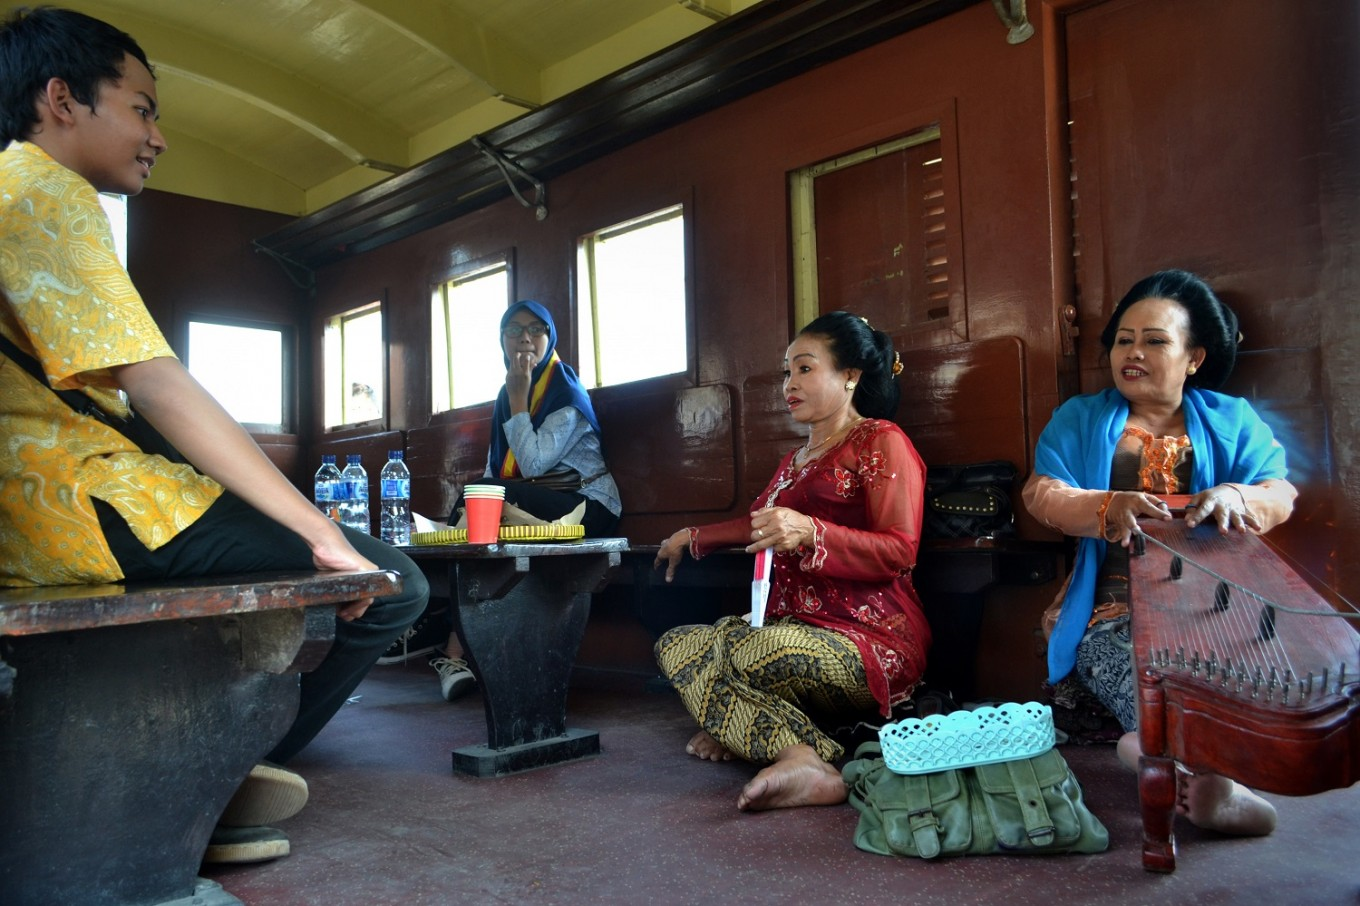 Traditional Javanese 'siteran' music is performed on board the Jaladara train.